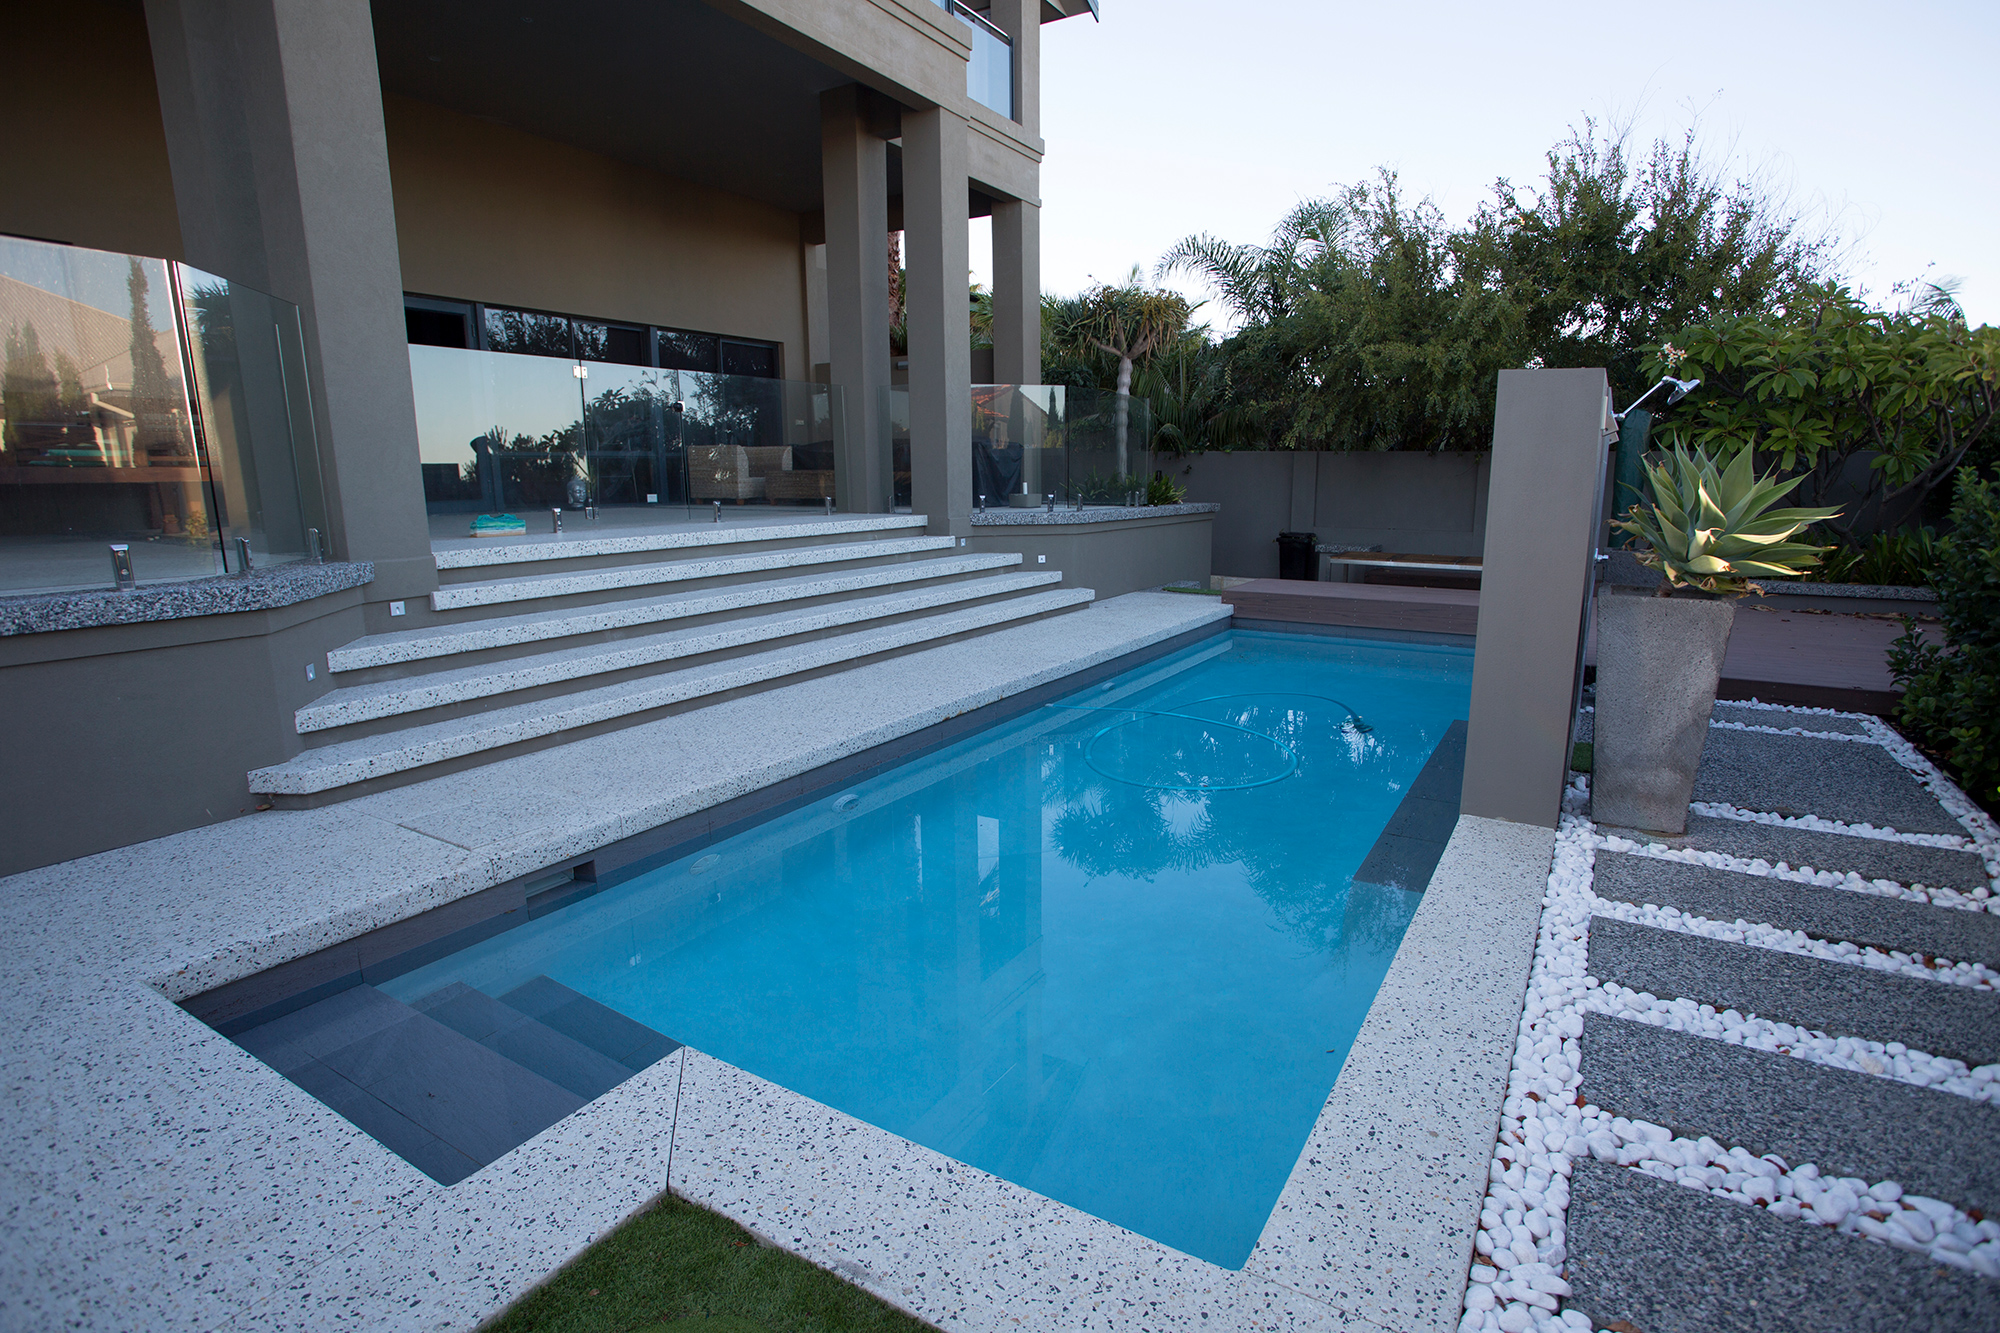 Sorrento Stone. Perth Concrete Specialists. Honed Concrete